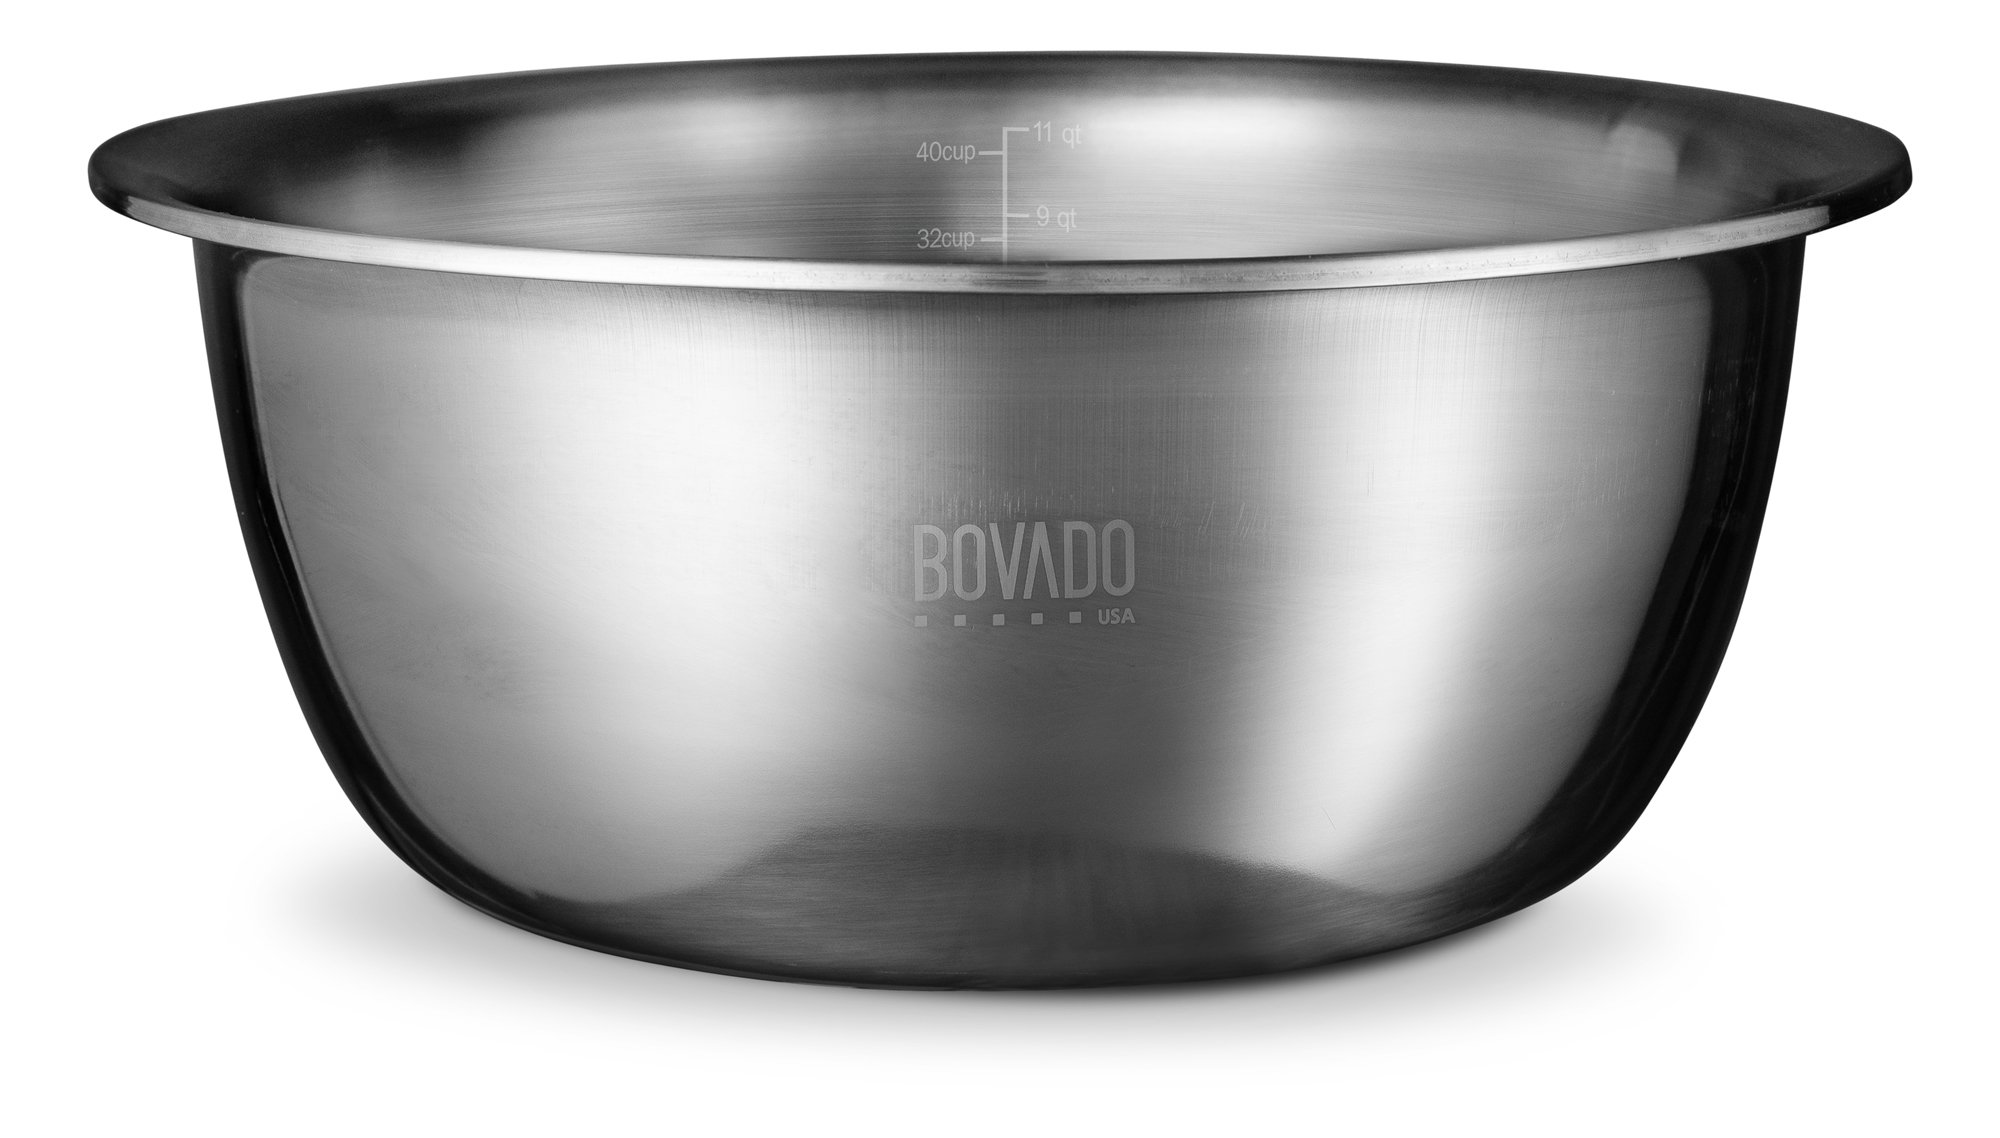 New Design Stainless Steel Mixing Bowl - 11.5qt - Flat Bottom Extra Wide Non Slip Base, Retains Temperature, Dishwasher Safe - By Bovado USA